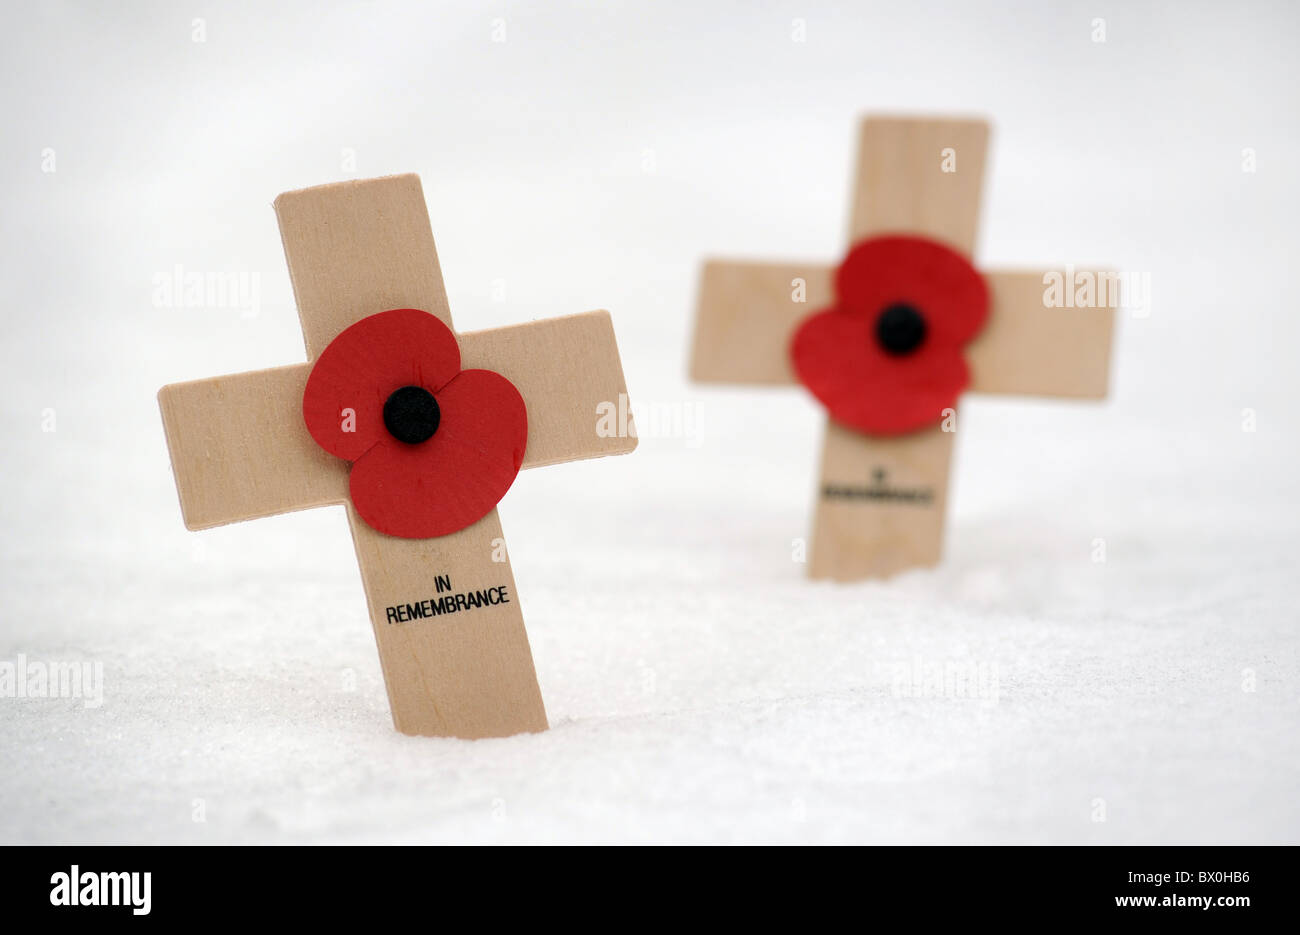 BRITISH REMEMBRANCE DAY POPPIES IN SNOW - Stock Image